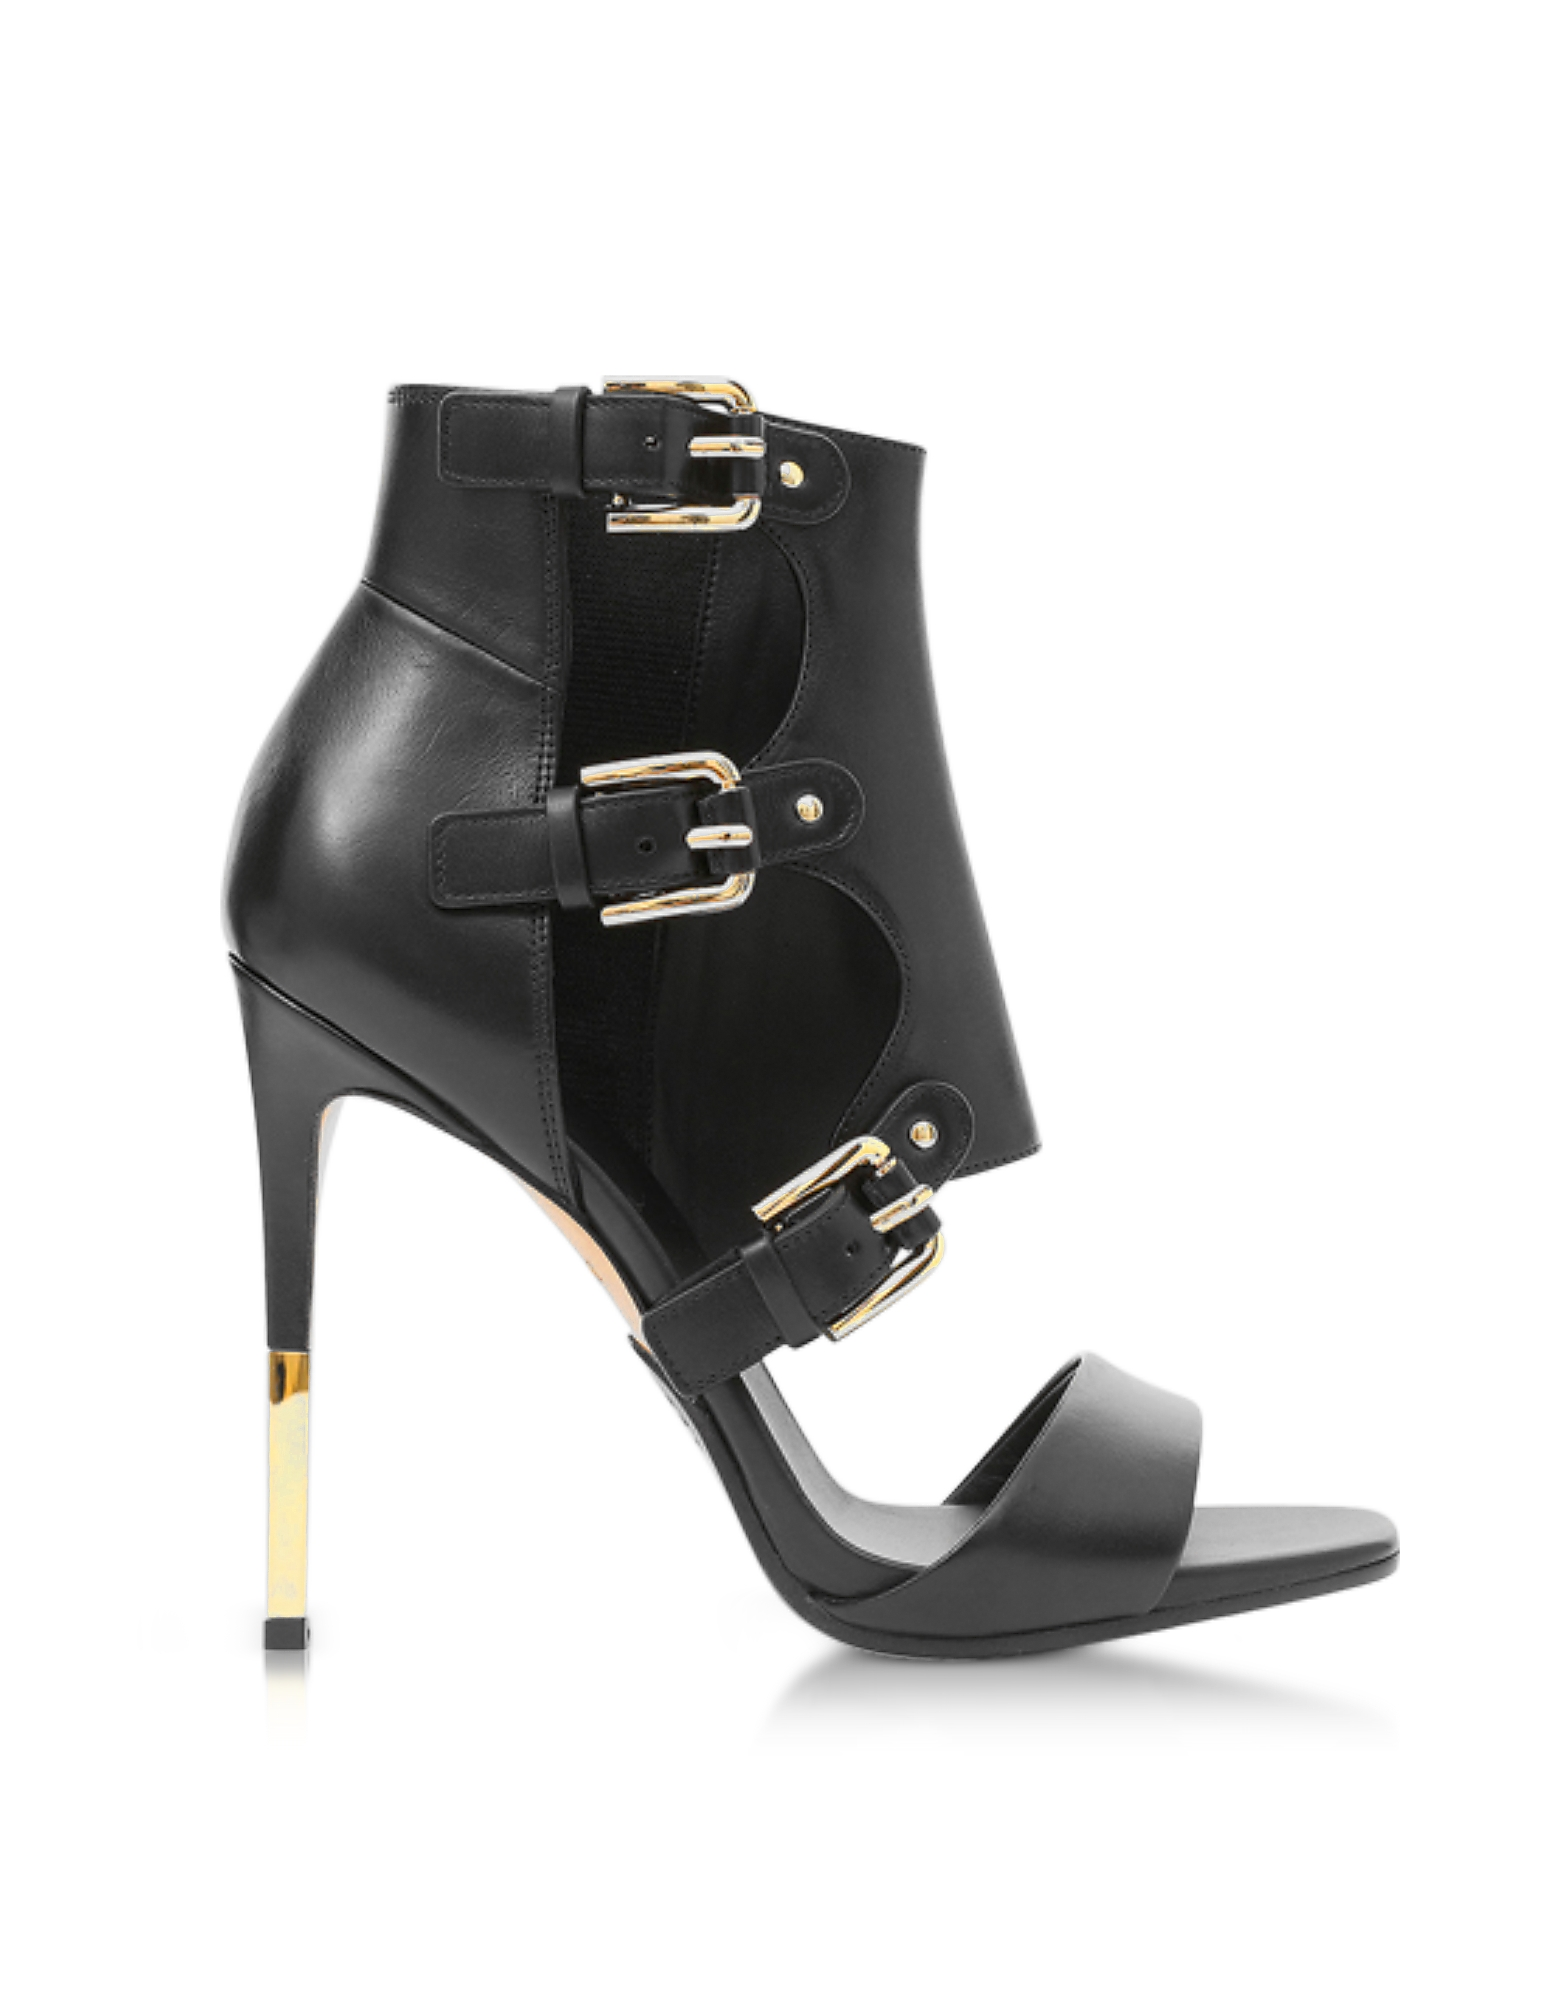 Balmain Shoes, Alienor Black Leather Sandals